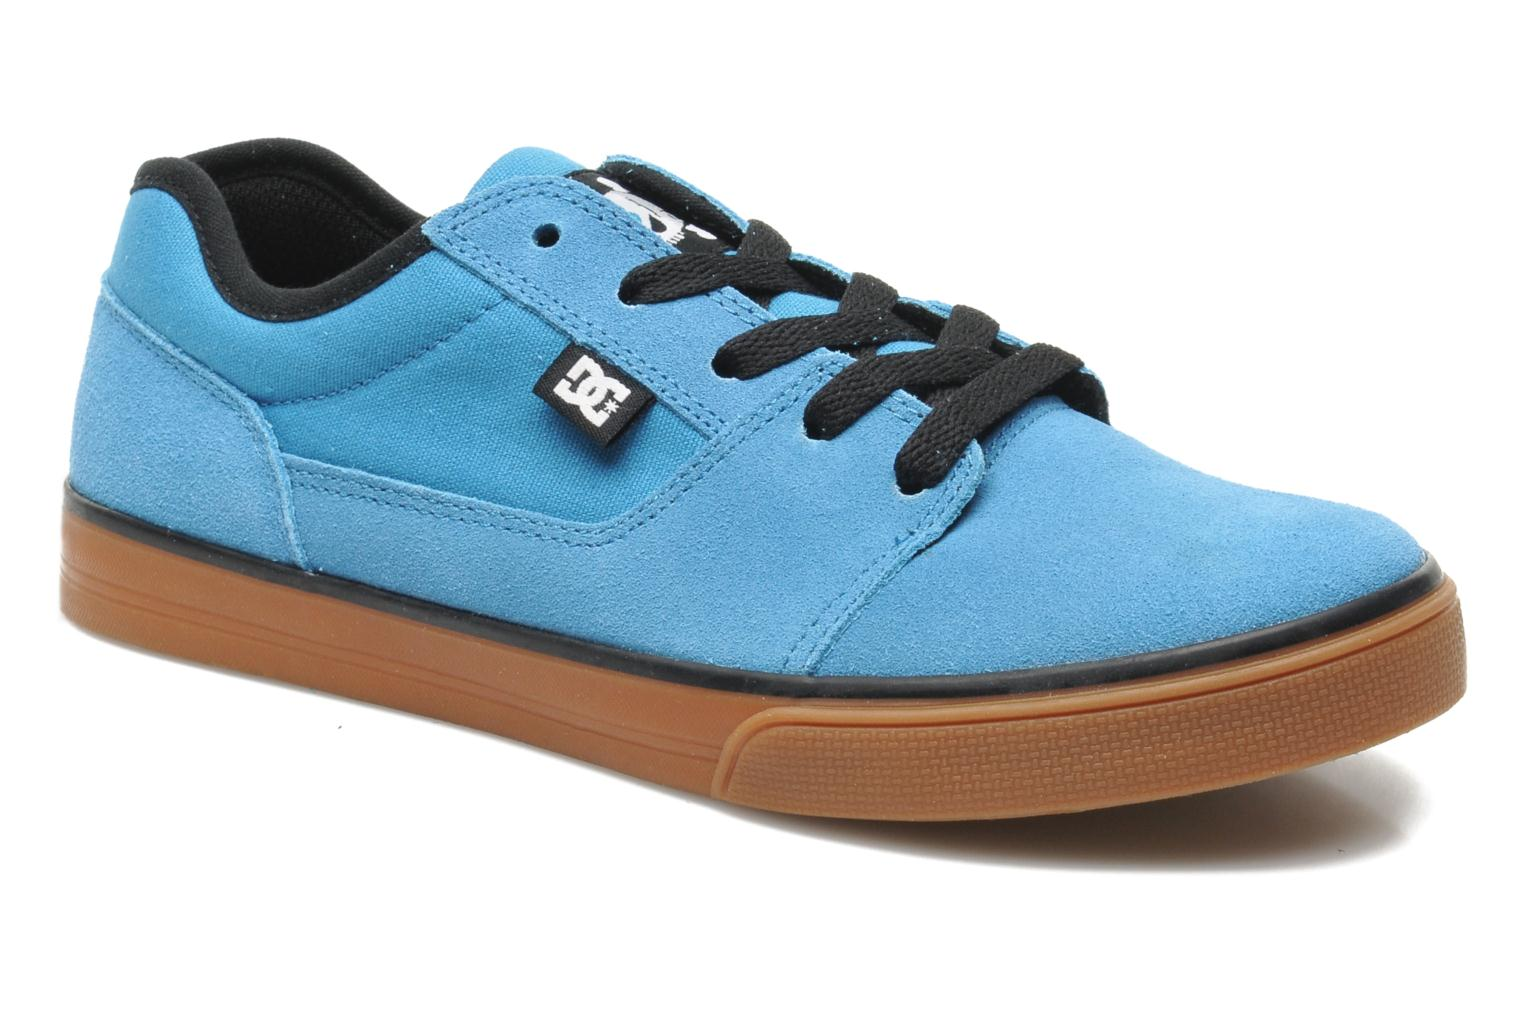 TONIK KB by DC Shoes